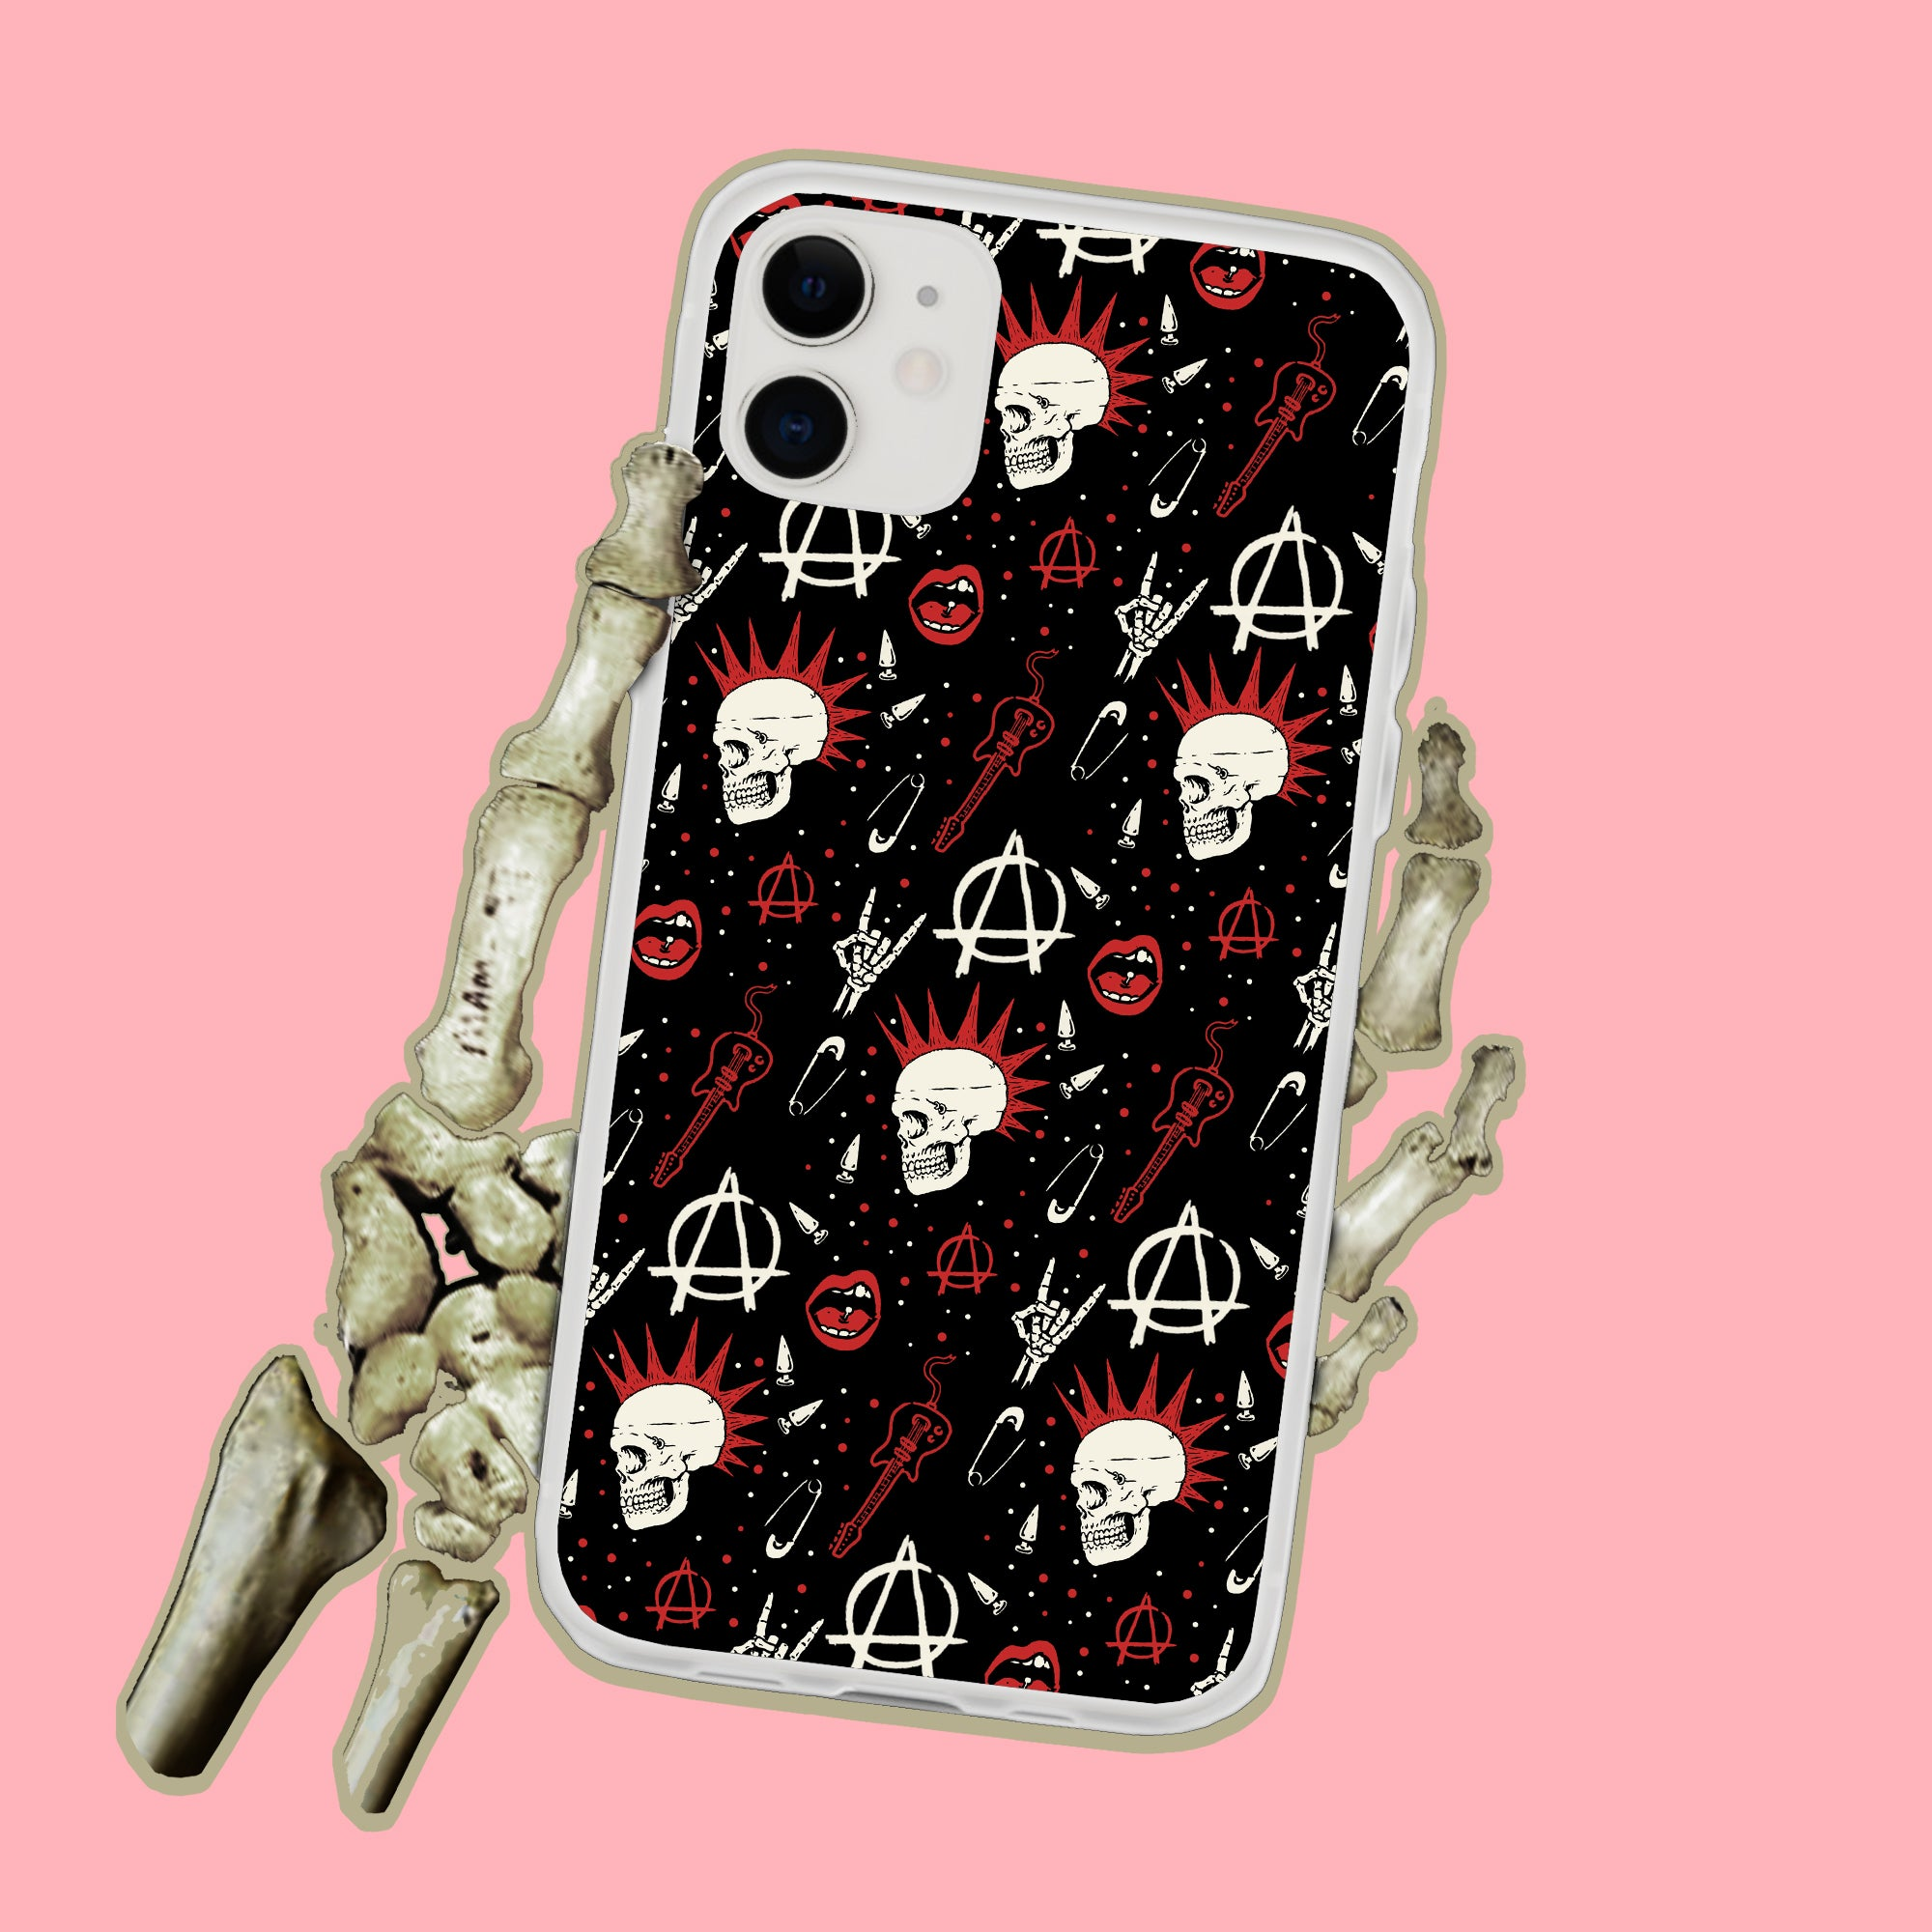 Punk Rock Anarchy iPhone Case